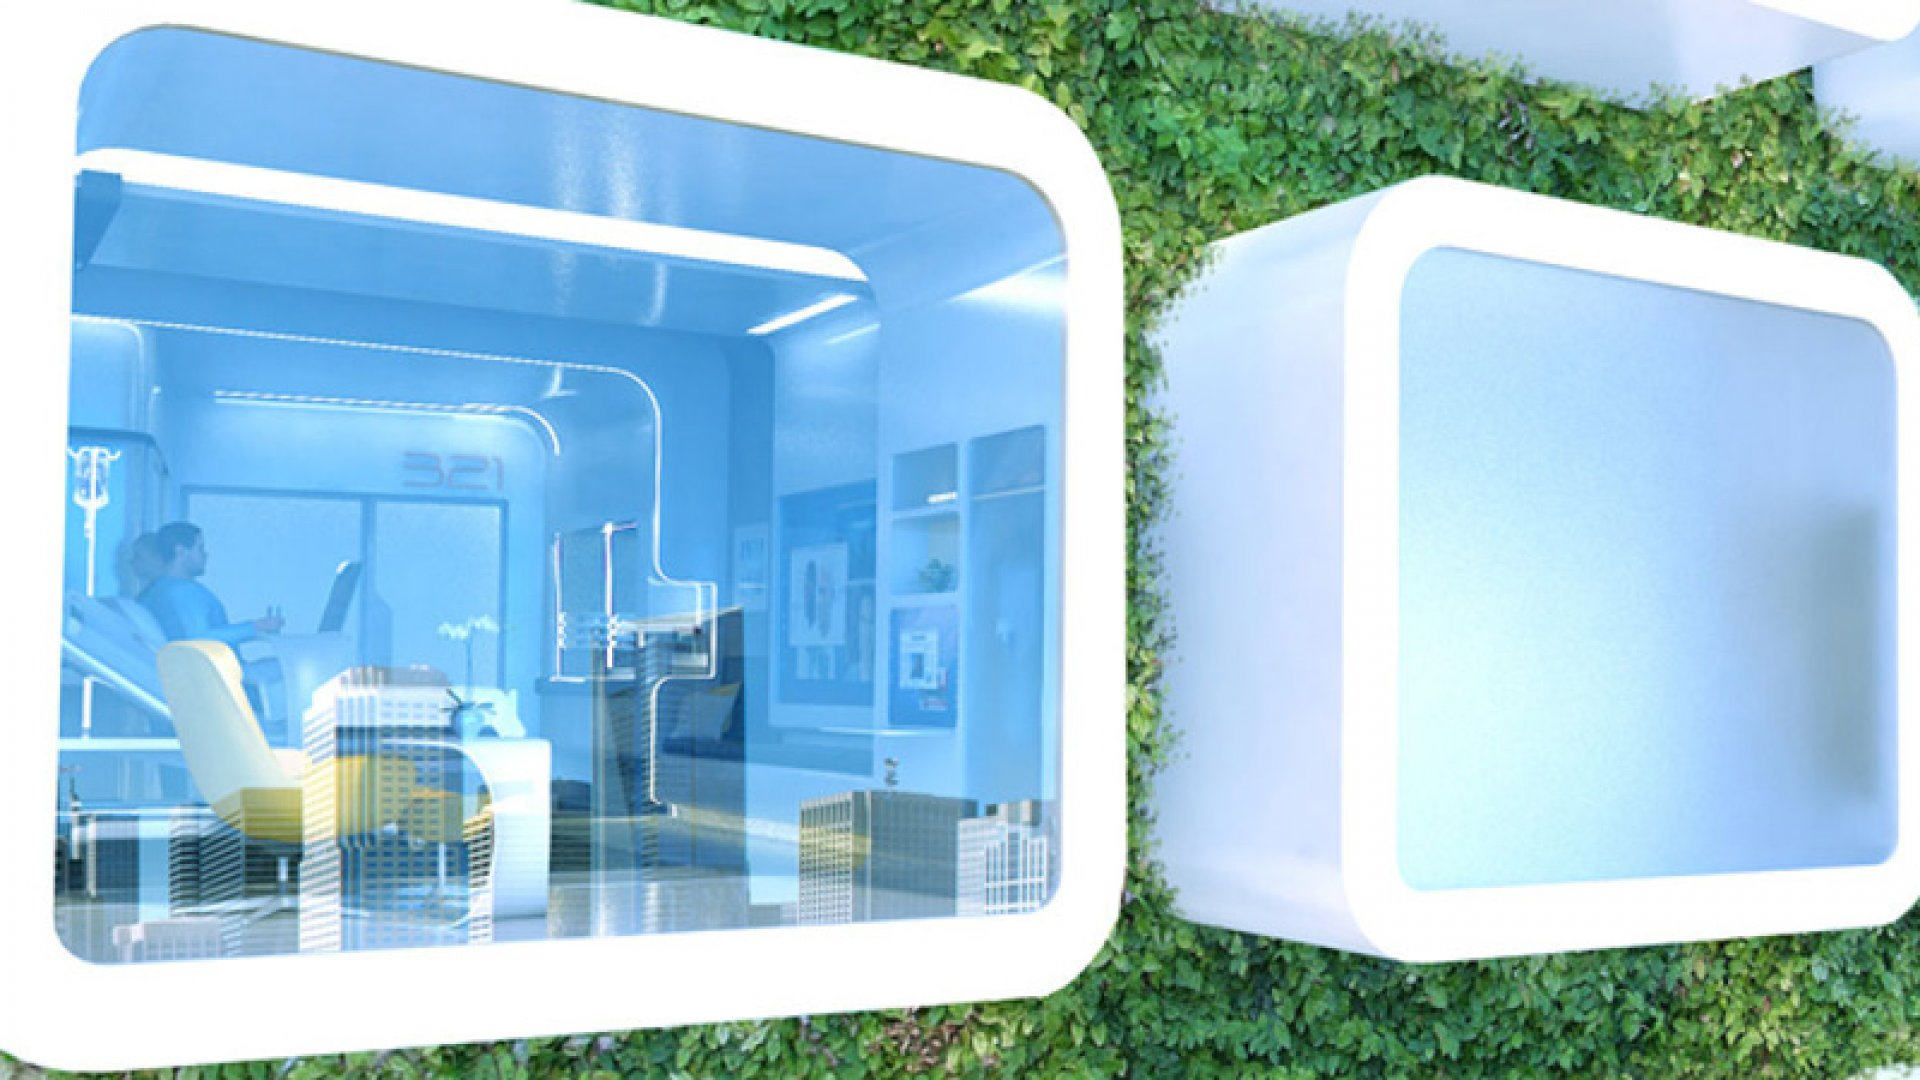 Here's What the Hospital Room of the Future Looks Like